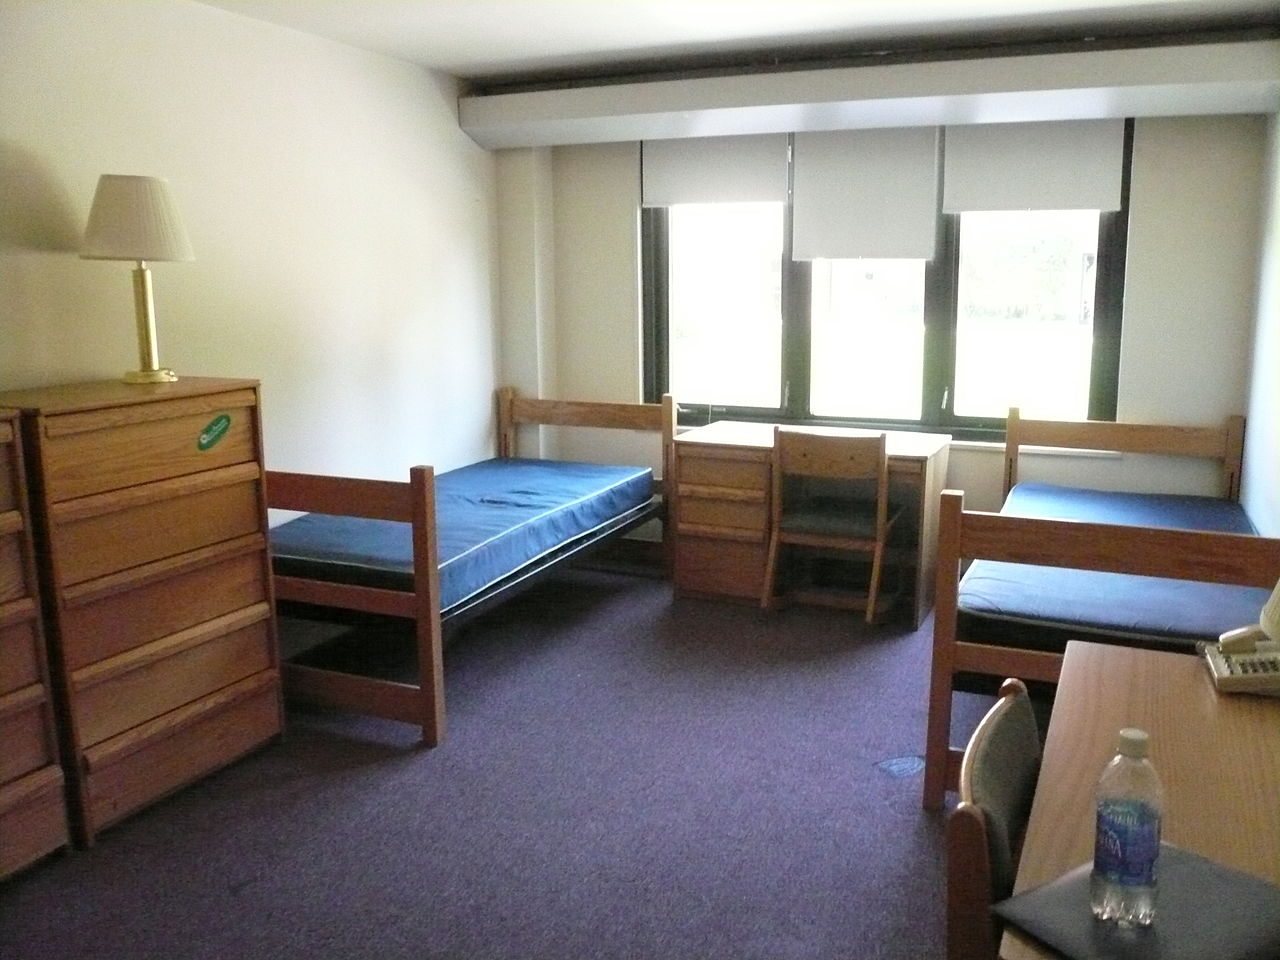 College Dorm Room Porn